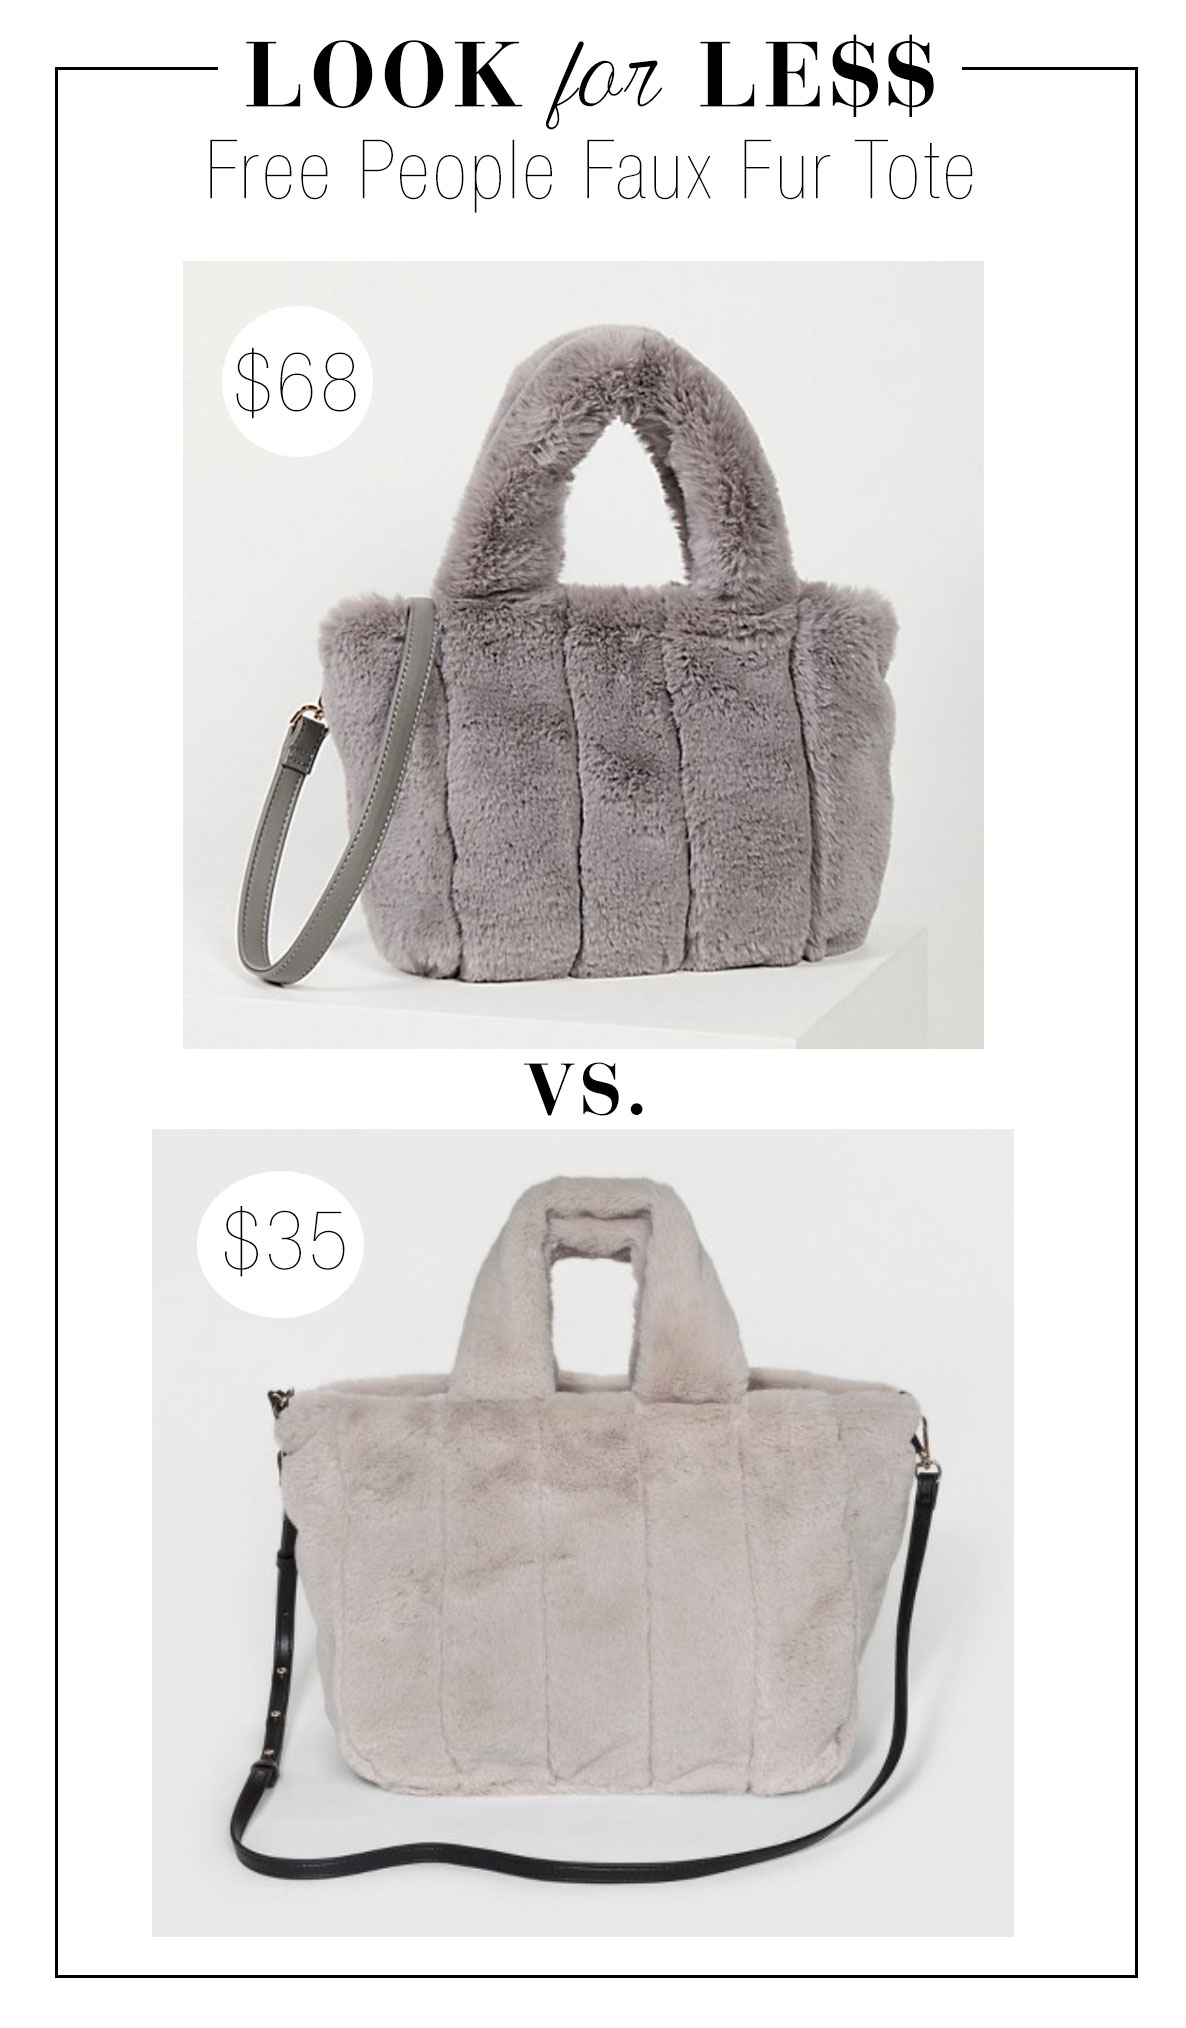 Free People faux fur bag and the look for less